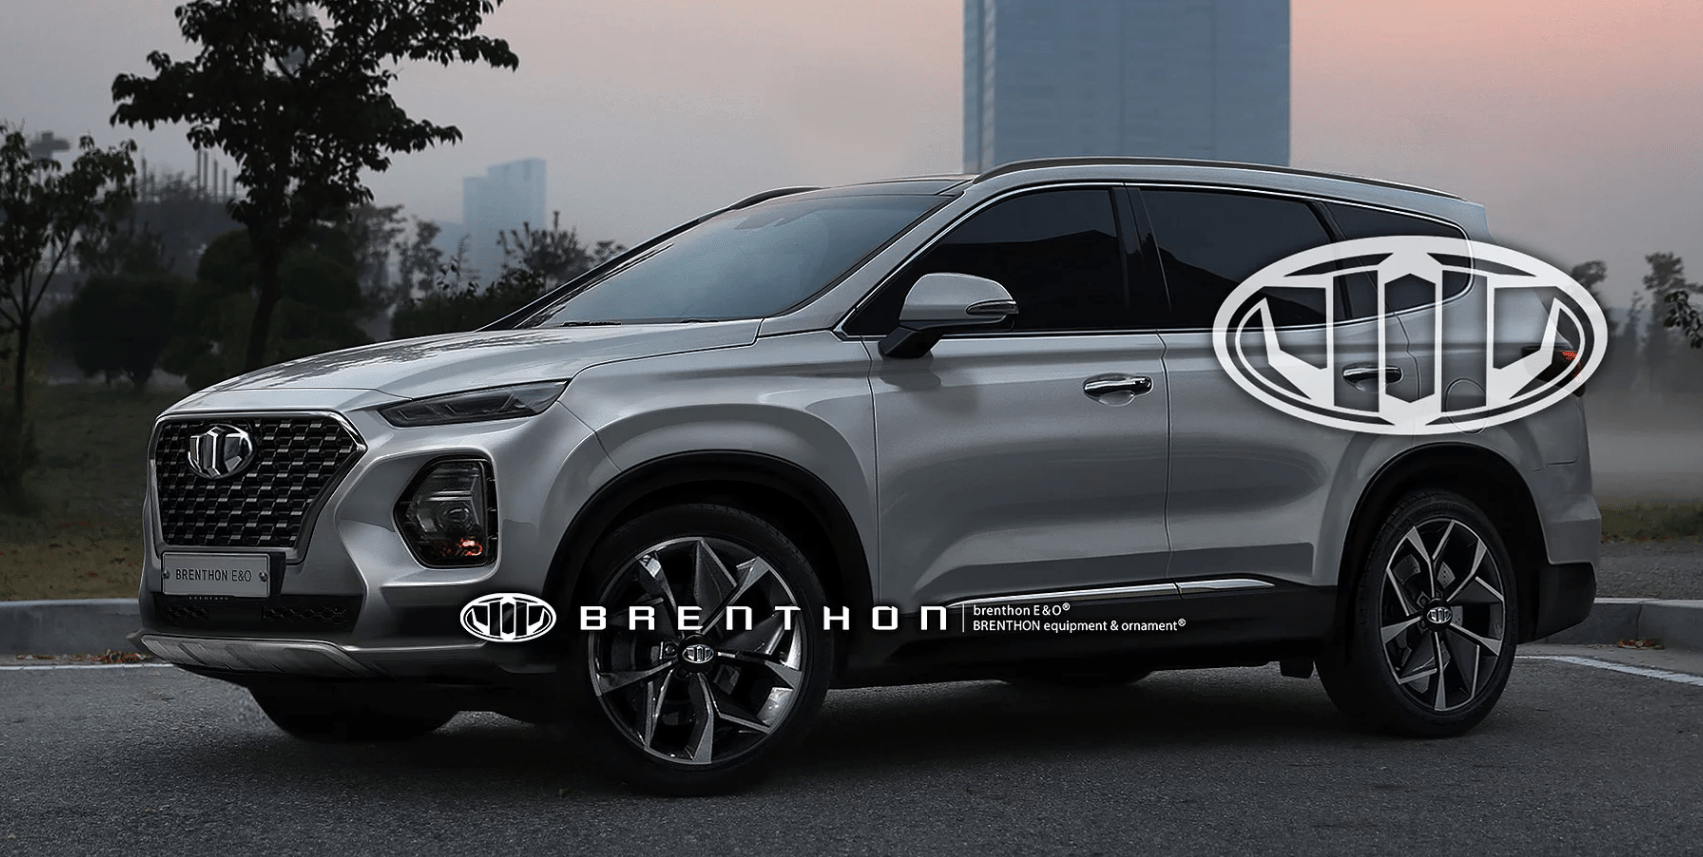 67 Great 2020 Hyundai Santa Fe Concept with 2020 Hyundai Santa Fe